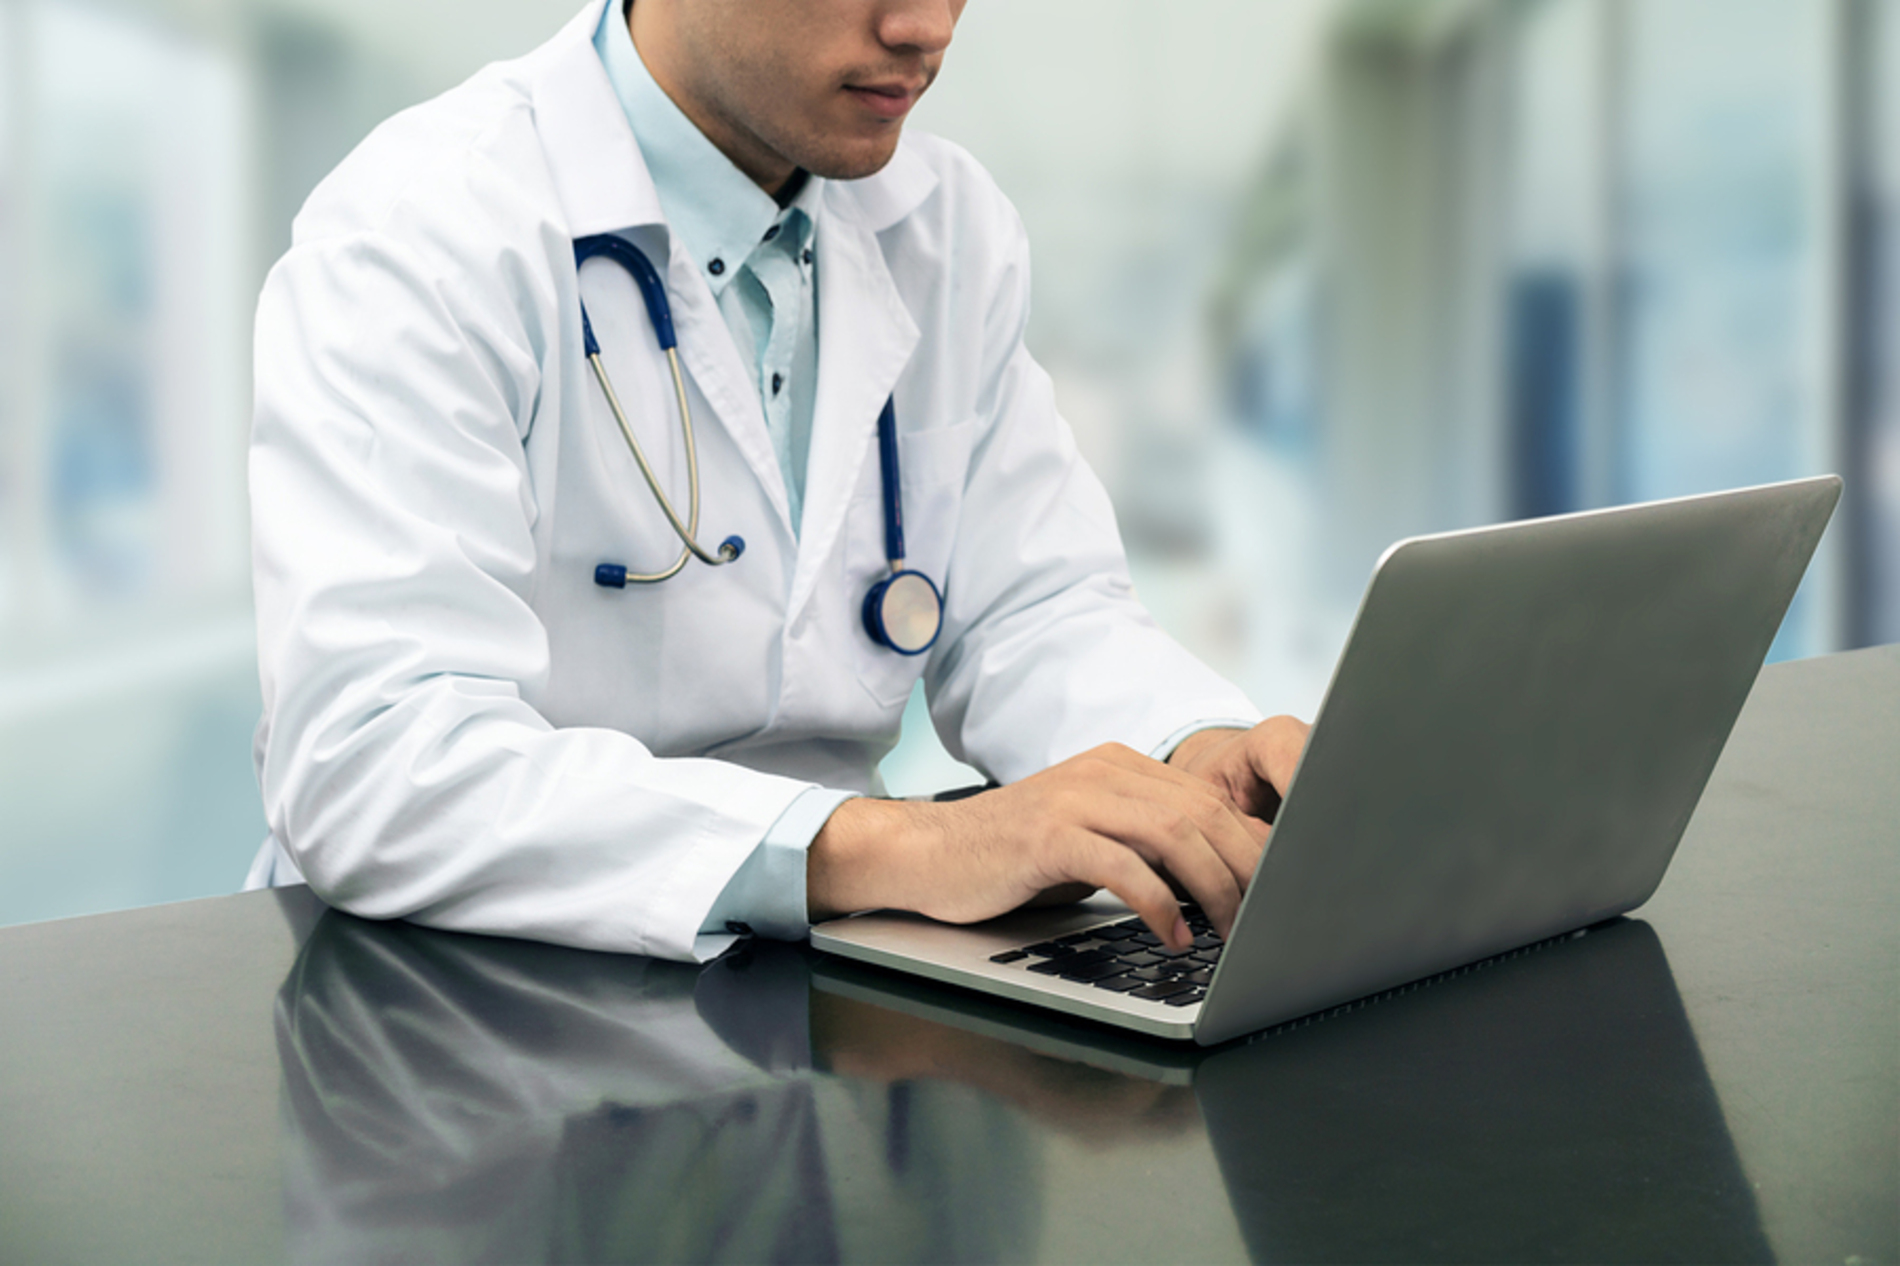 Medical doctor typing on a laptop.